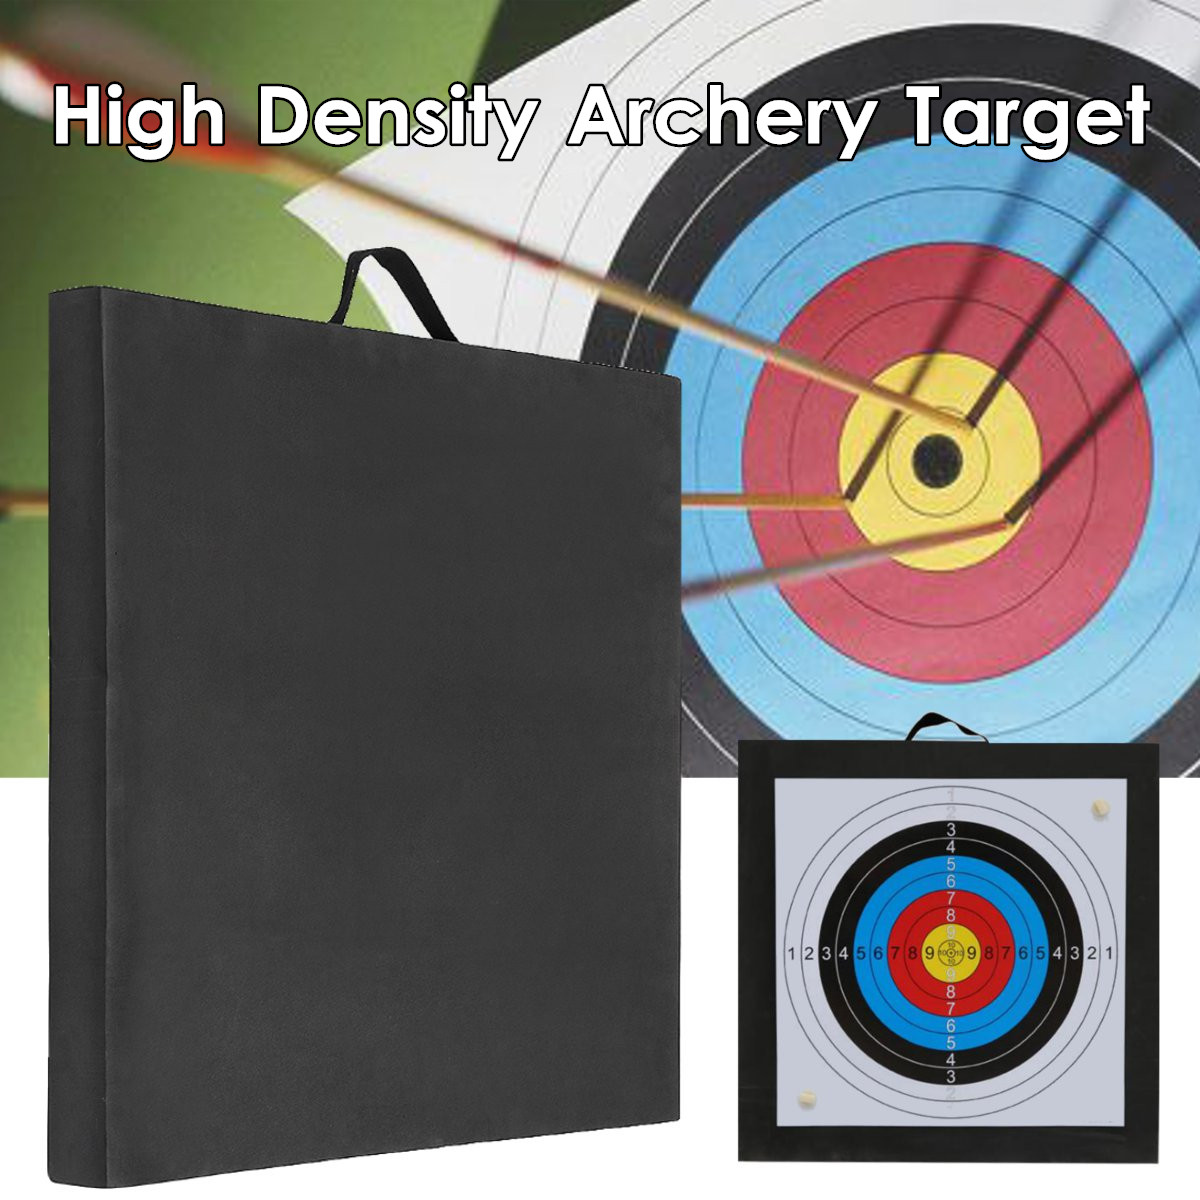 Black Archery Target High Density EVA Foam Shooting Practice Board RecurveCrossbow 50x50cm Outdoor Sport Hunting AccessoriesBlack Archery Target High Density EVA Foam Shooting Practice Board RecurveCrossbow 50x50cm Outdoor Sport Hunting Accessories